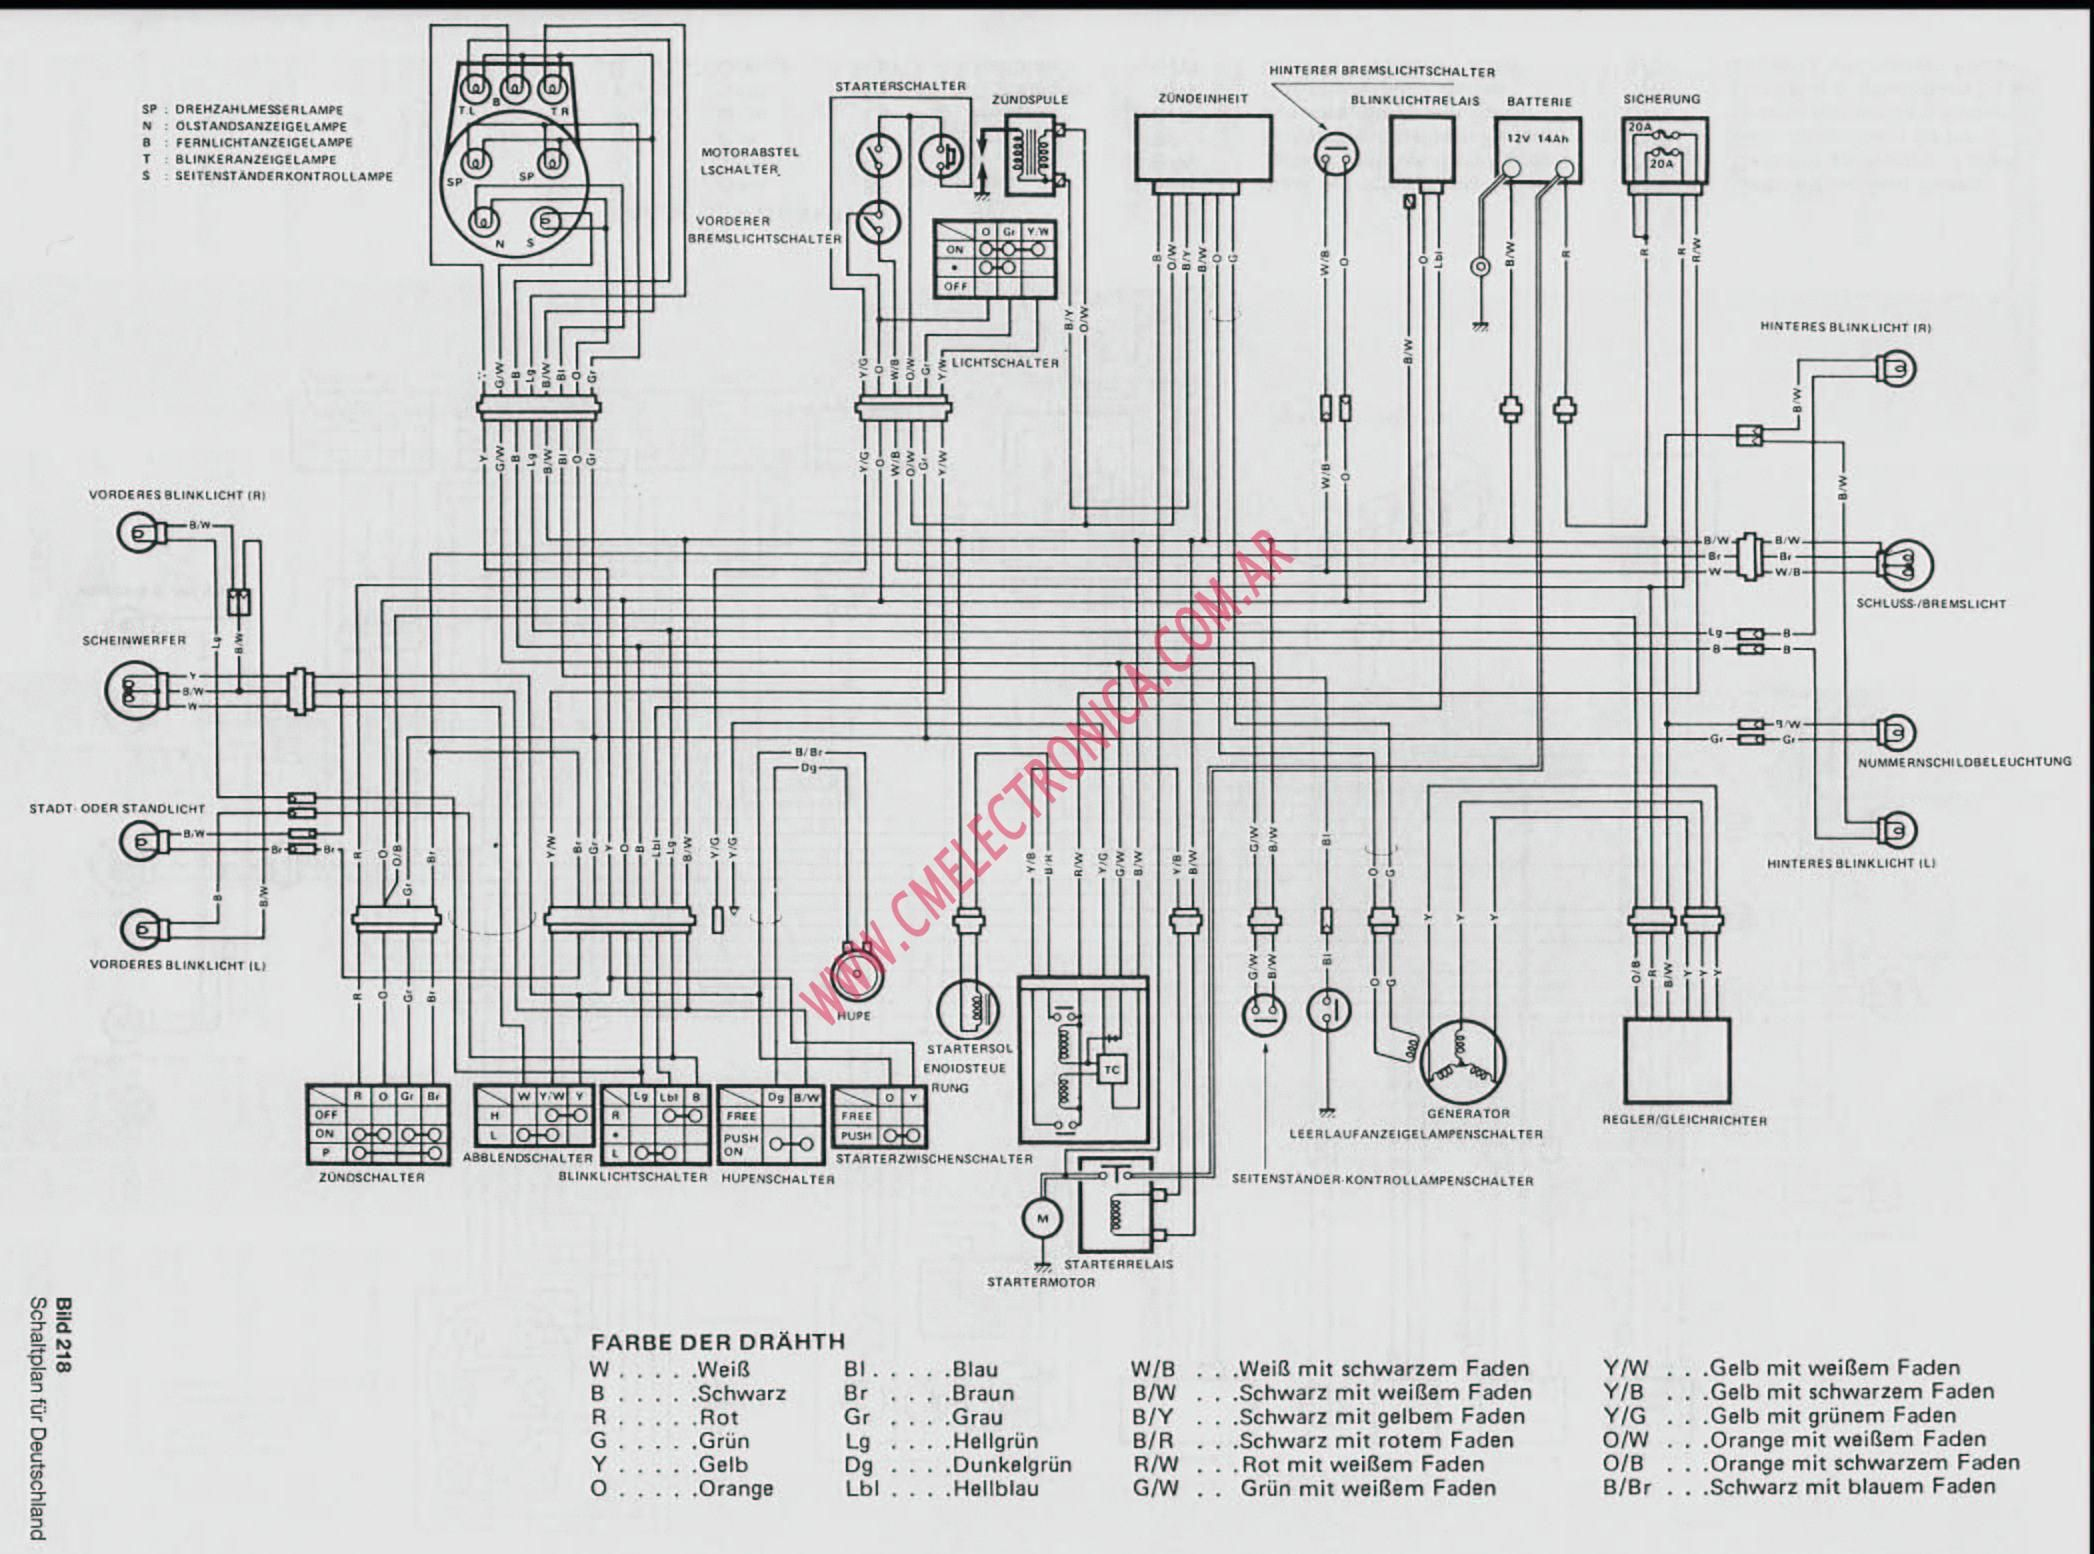 open concept wiring diagram best of diagram suzuki vl1500 wiring diagram - millions ... #14